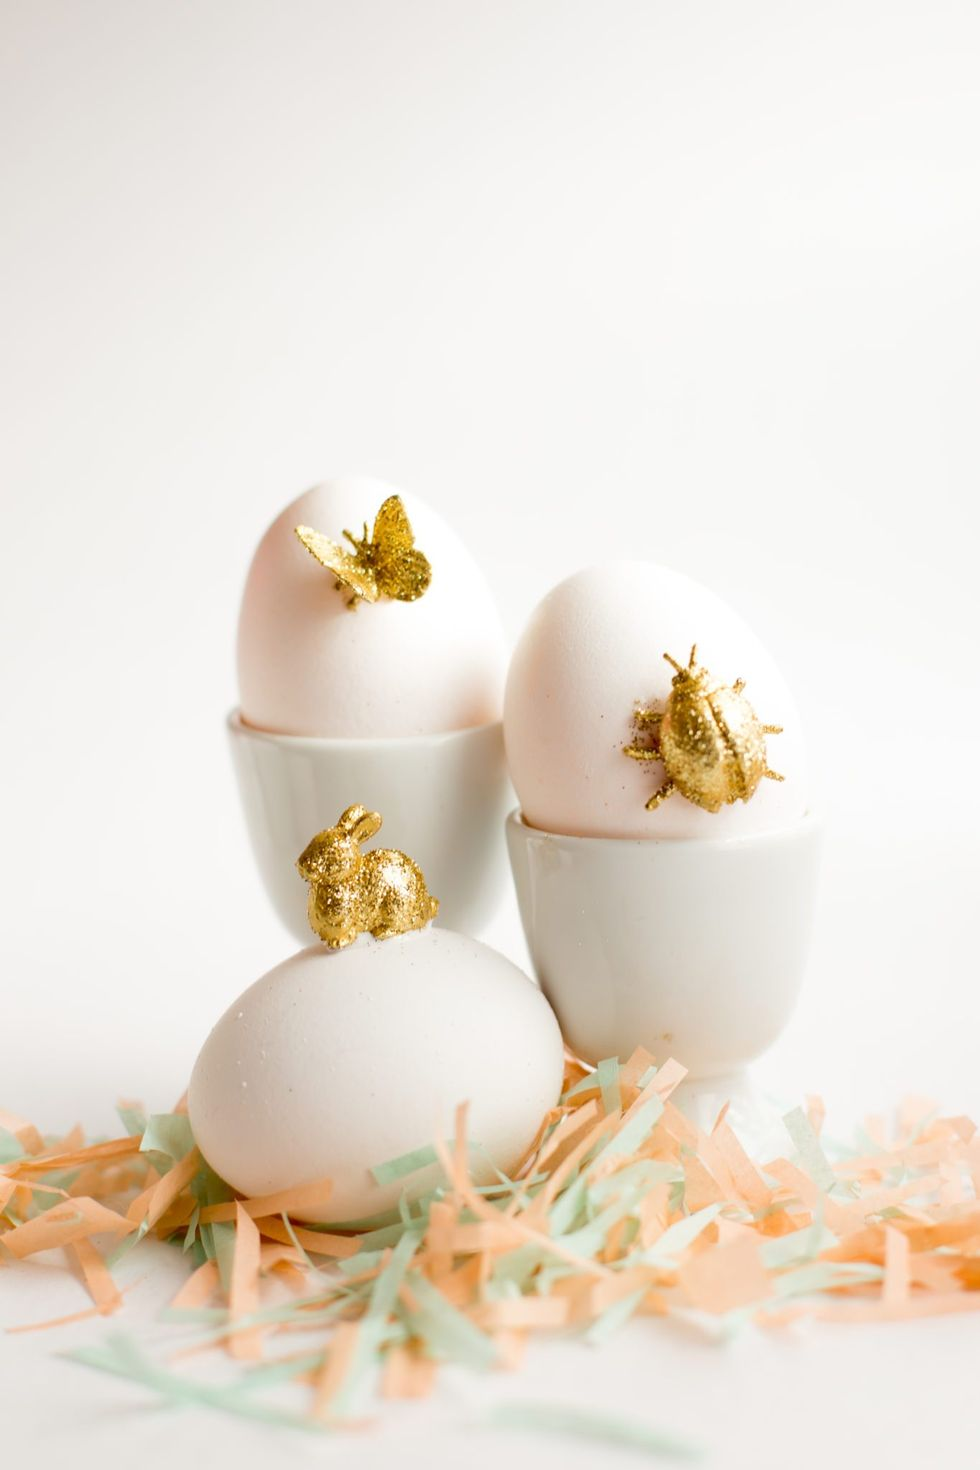 easter-egg-designs-gold-animal-easter-egg-diy-7194-1518710331